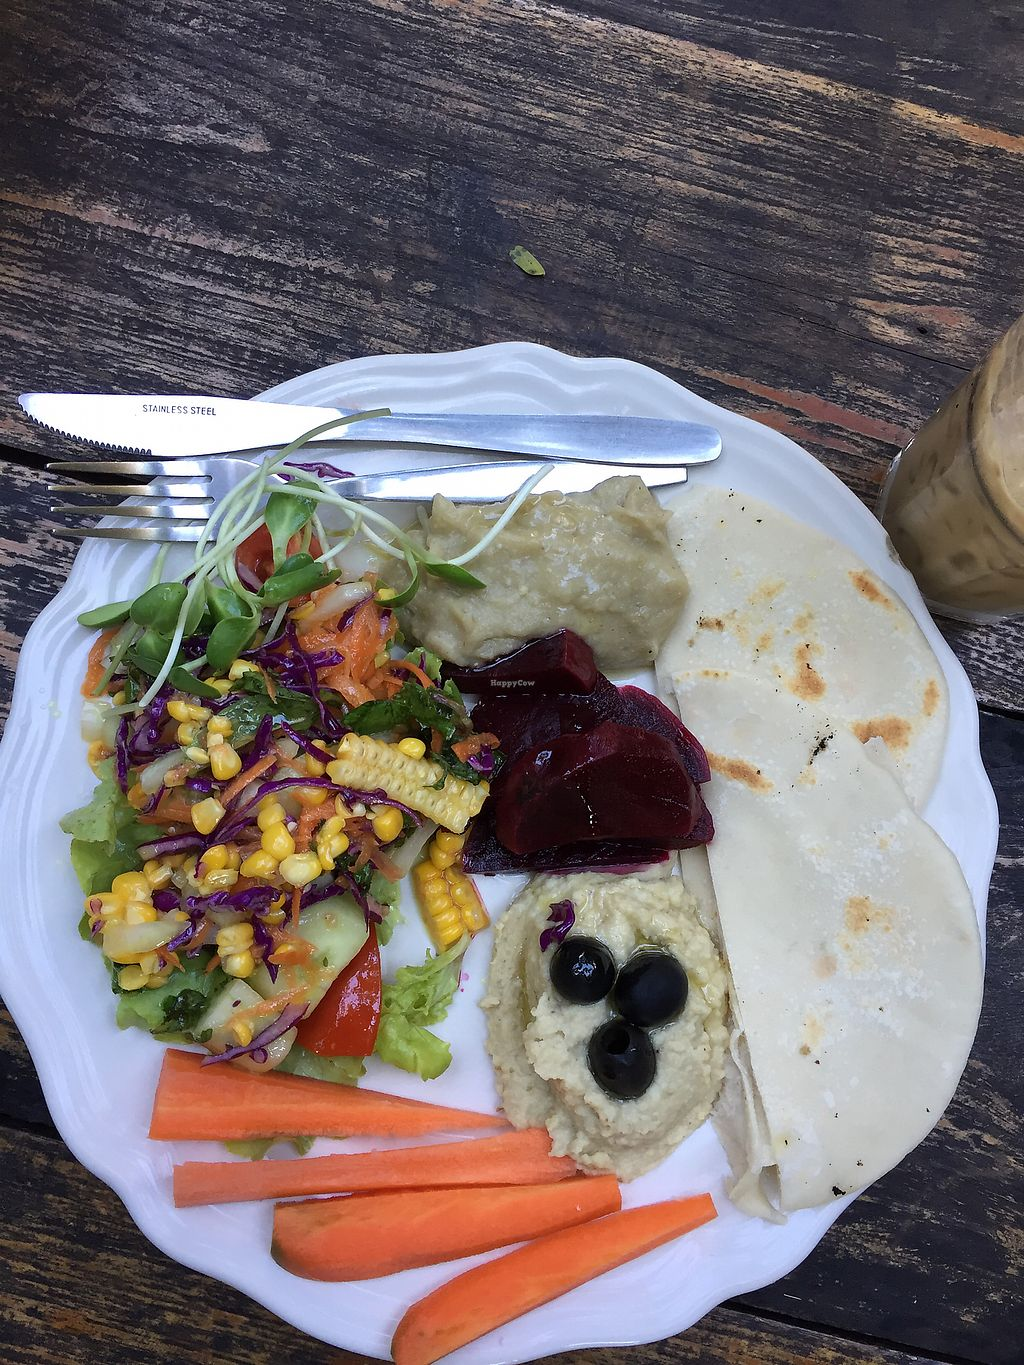 "Photo of Om Garden Cafe  by <a href=""/members/profile/ClaudiaMarie"">ClaudiaMarie</a> <br/>Mezze plate, made vegan  <br/> February 4, 2018  - <a href='/contact/abuse/image/37078/354653'>Report</a>"